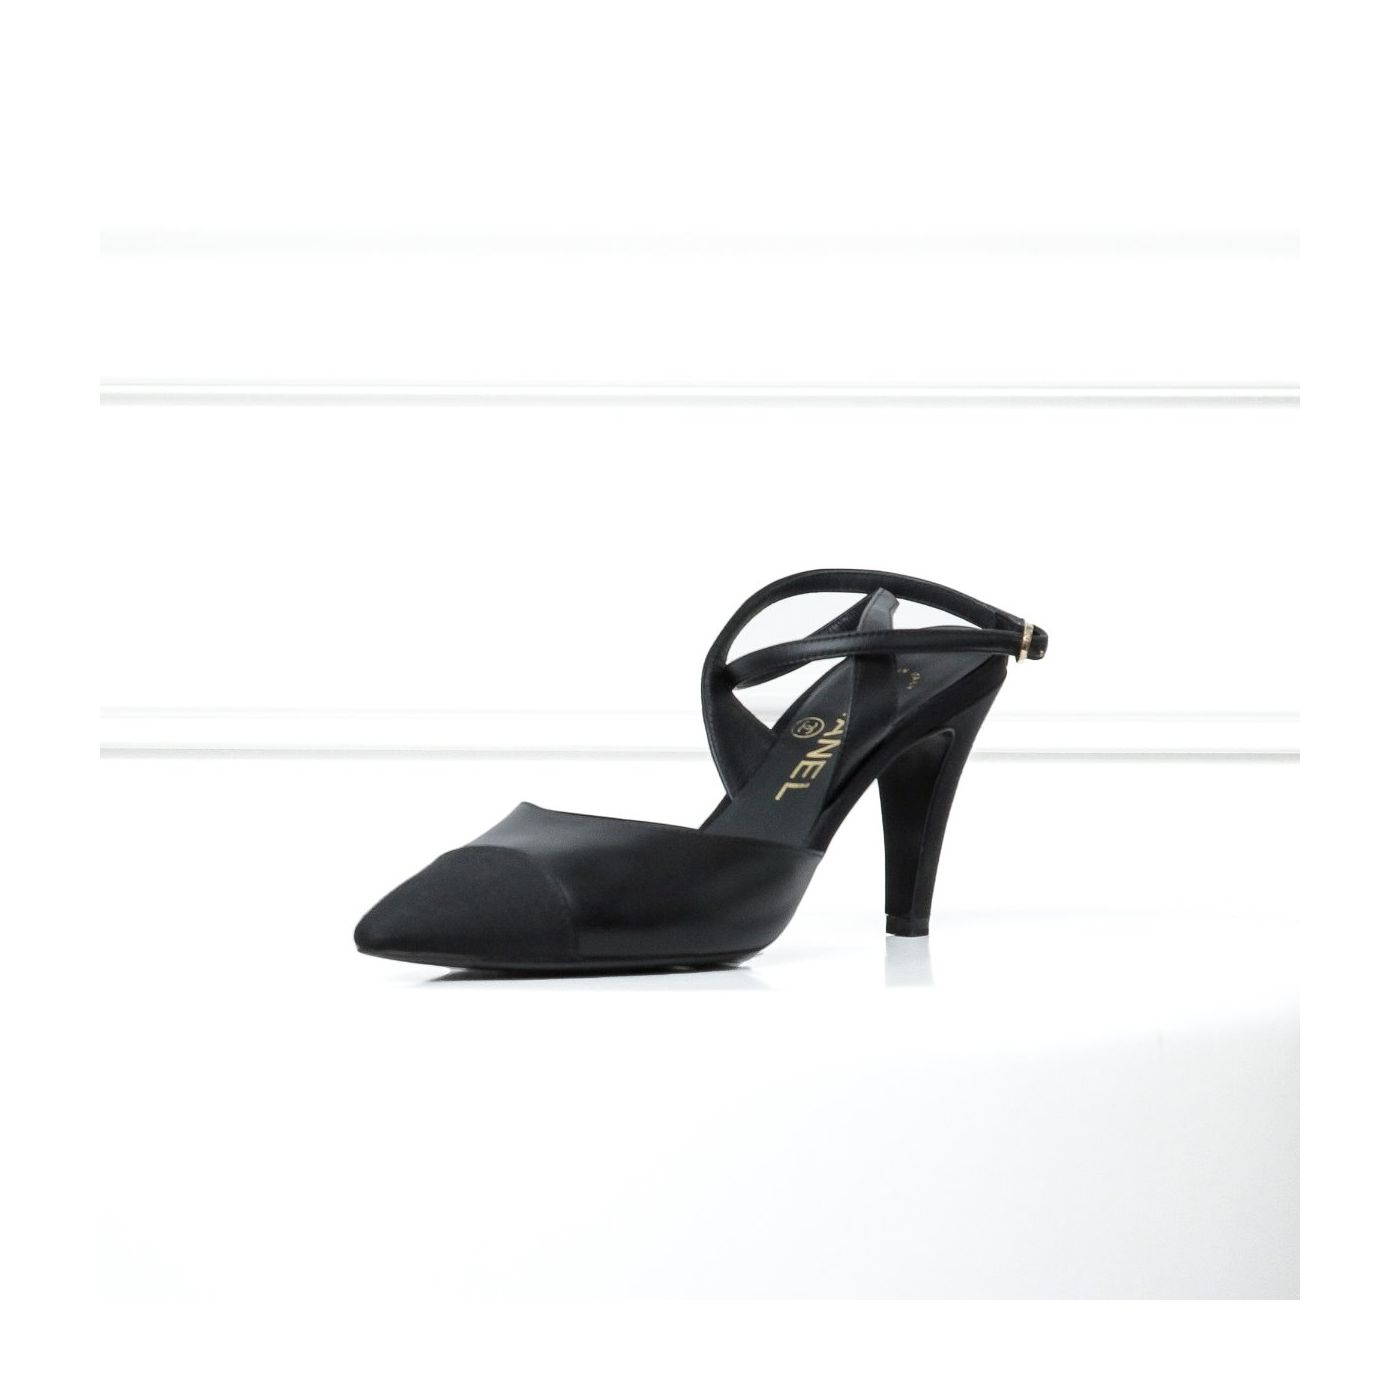 Chanel Black Pointed Cross Sandals 37